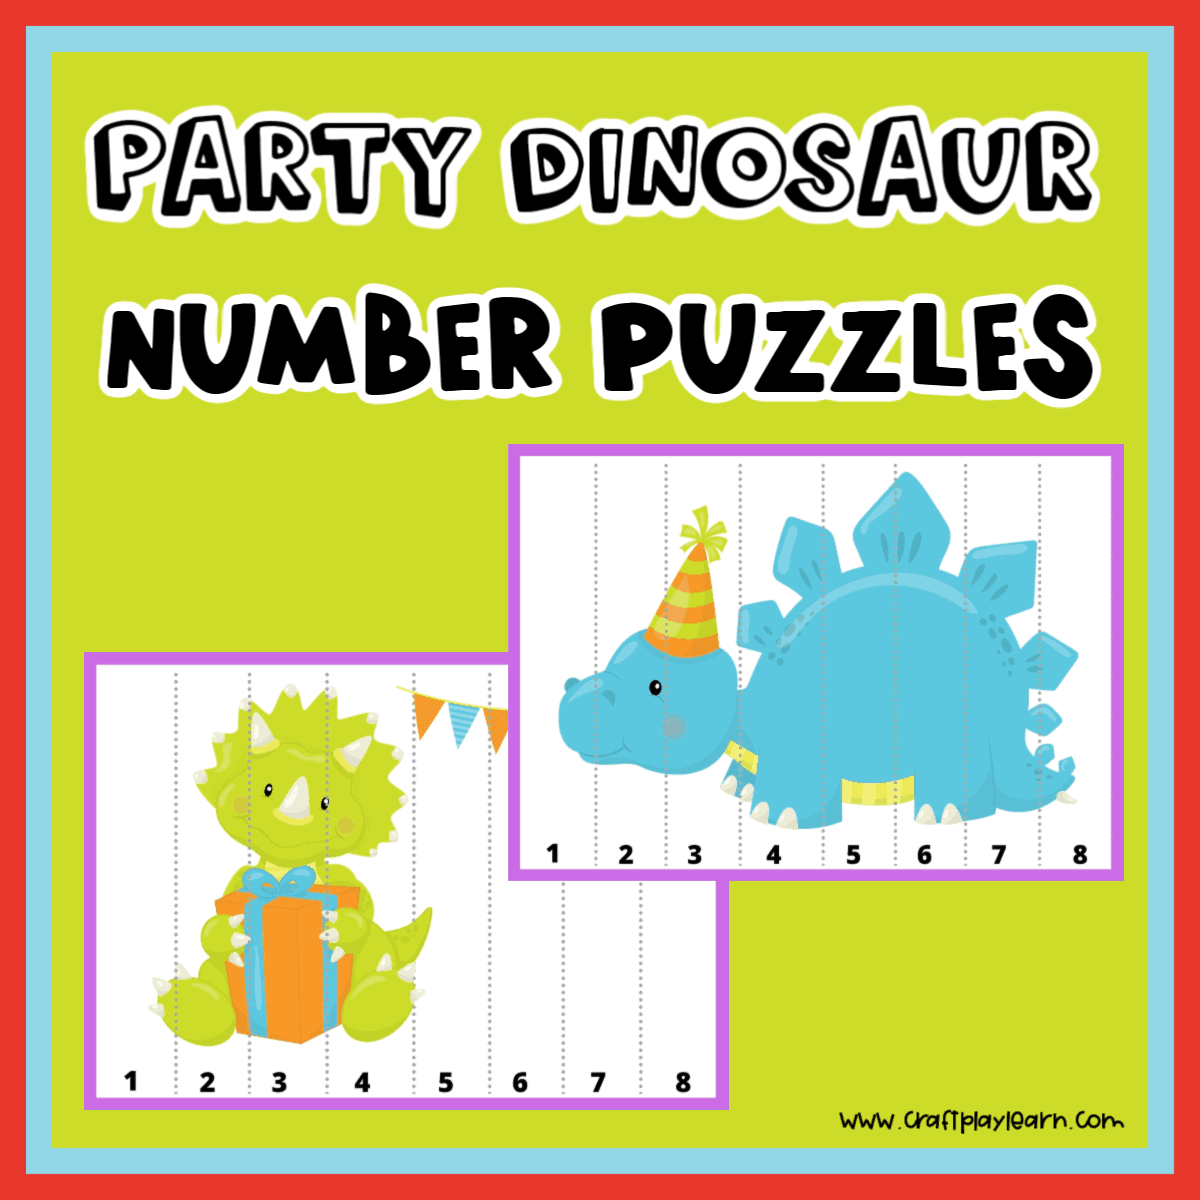 Dinosaur Number Puzzles For Kids